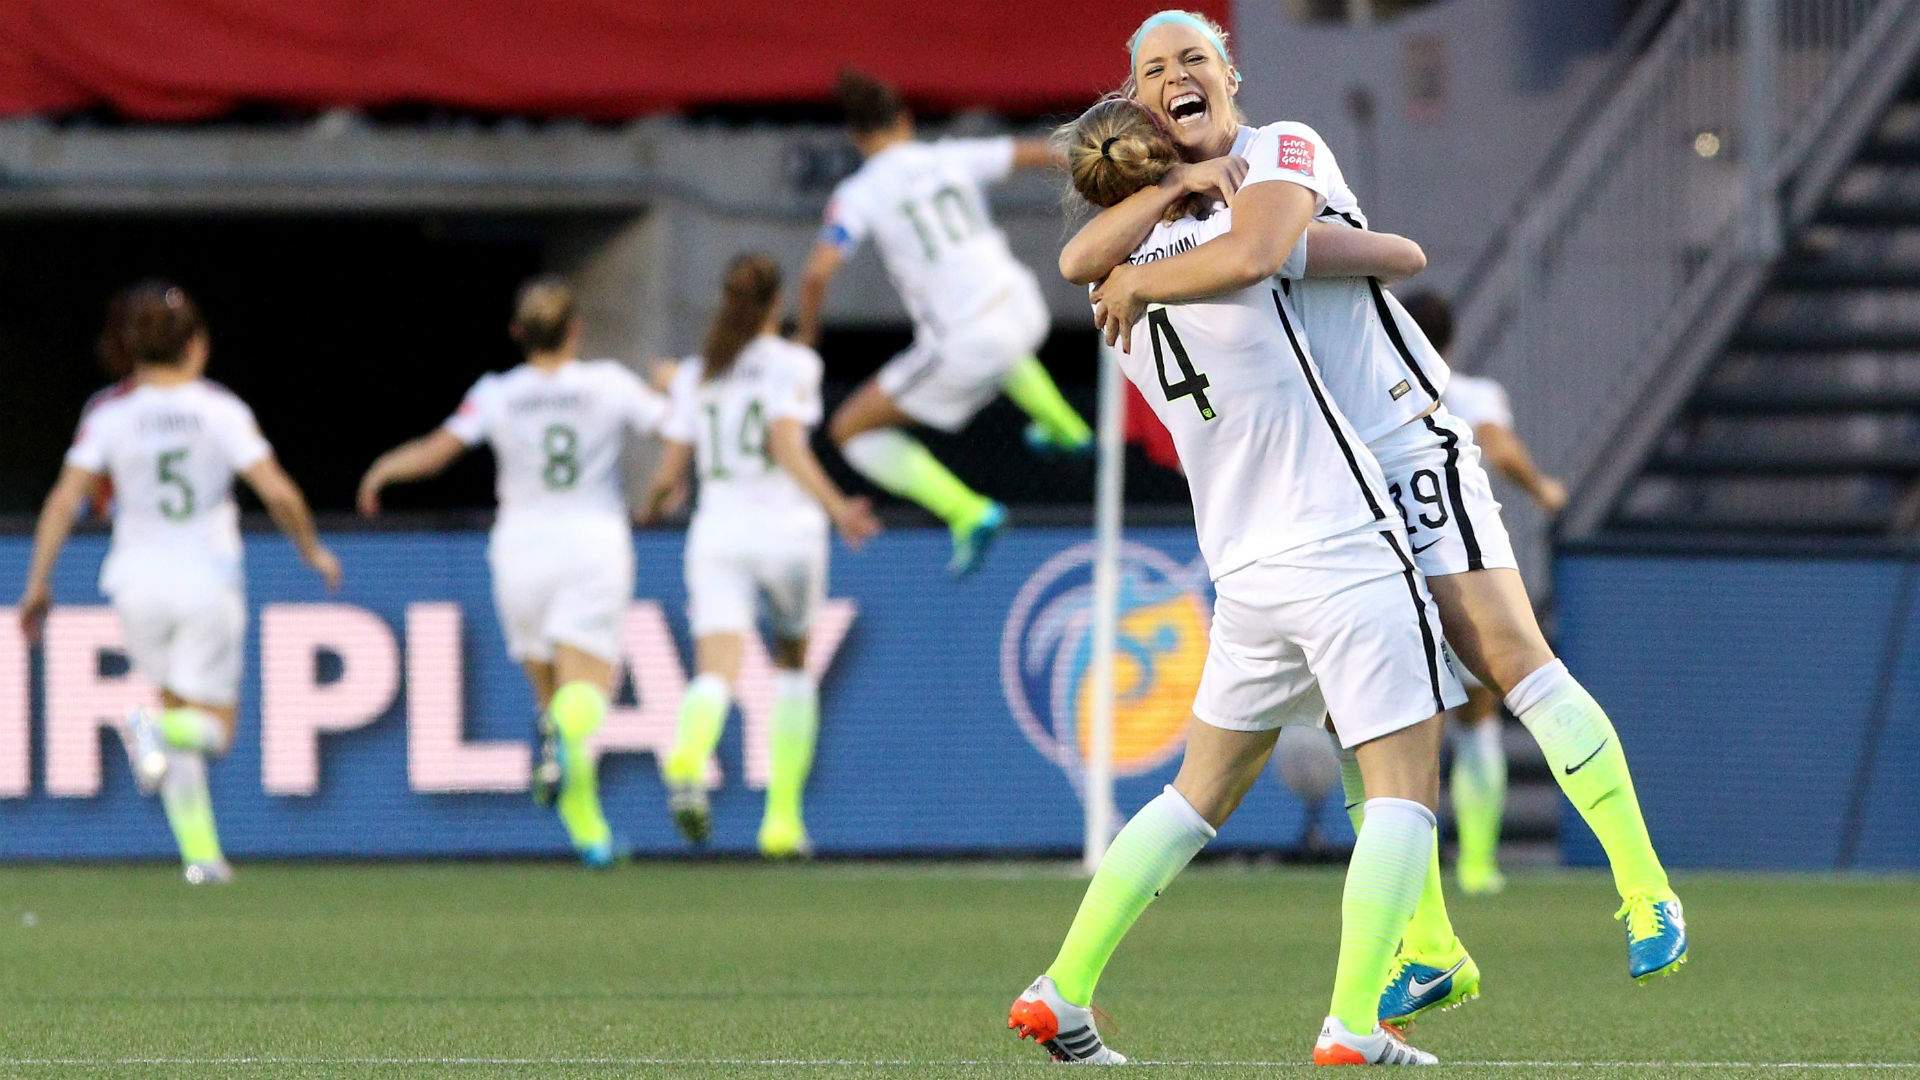 Women's World Cup, USA vs. Germany: What you need to know about the semifinal